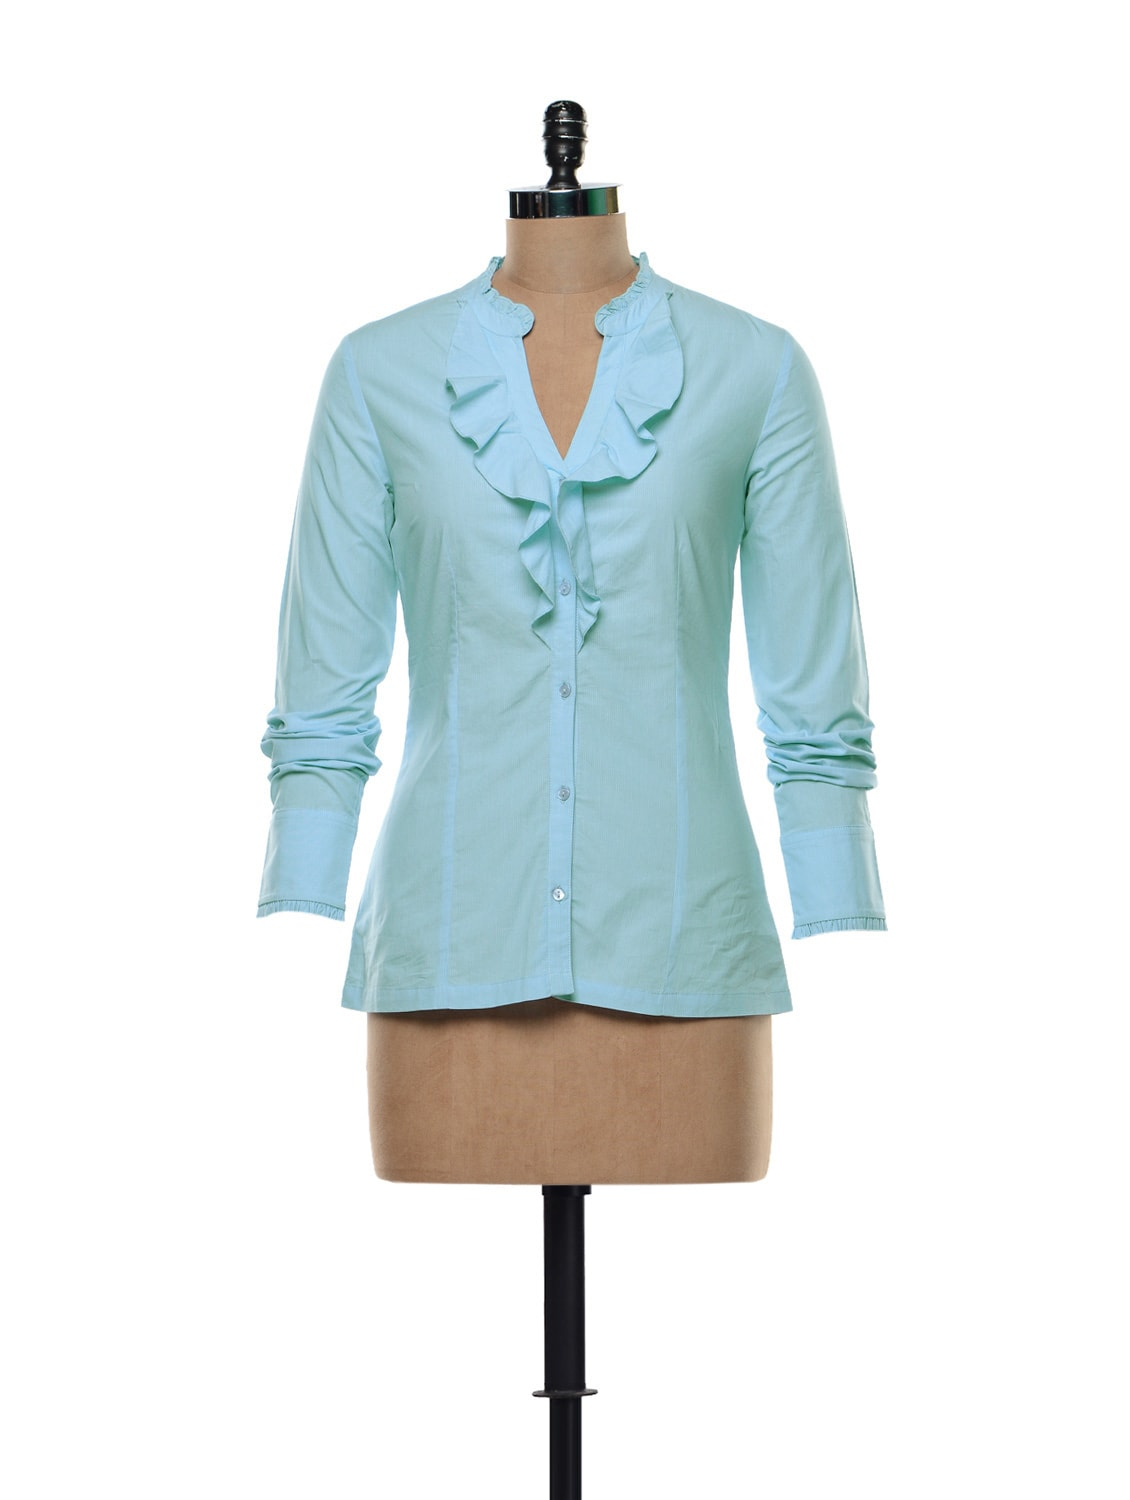 Ruffled Blouse In Light Blue - Kaaryah